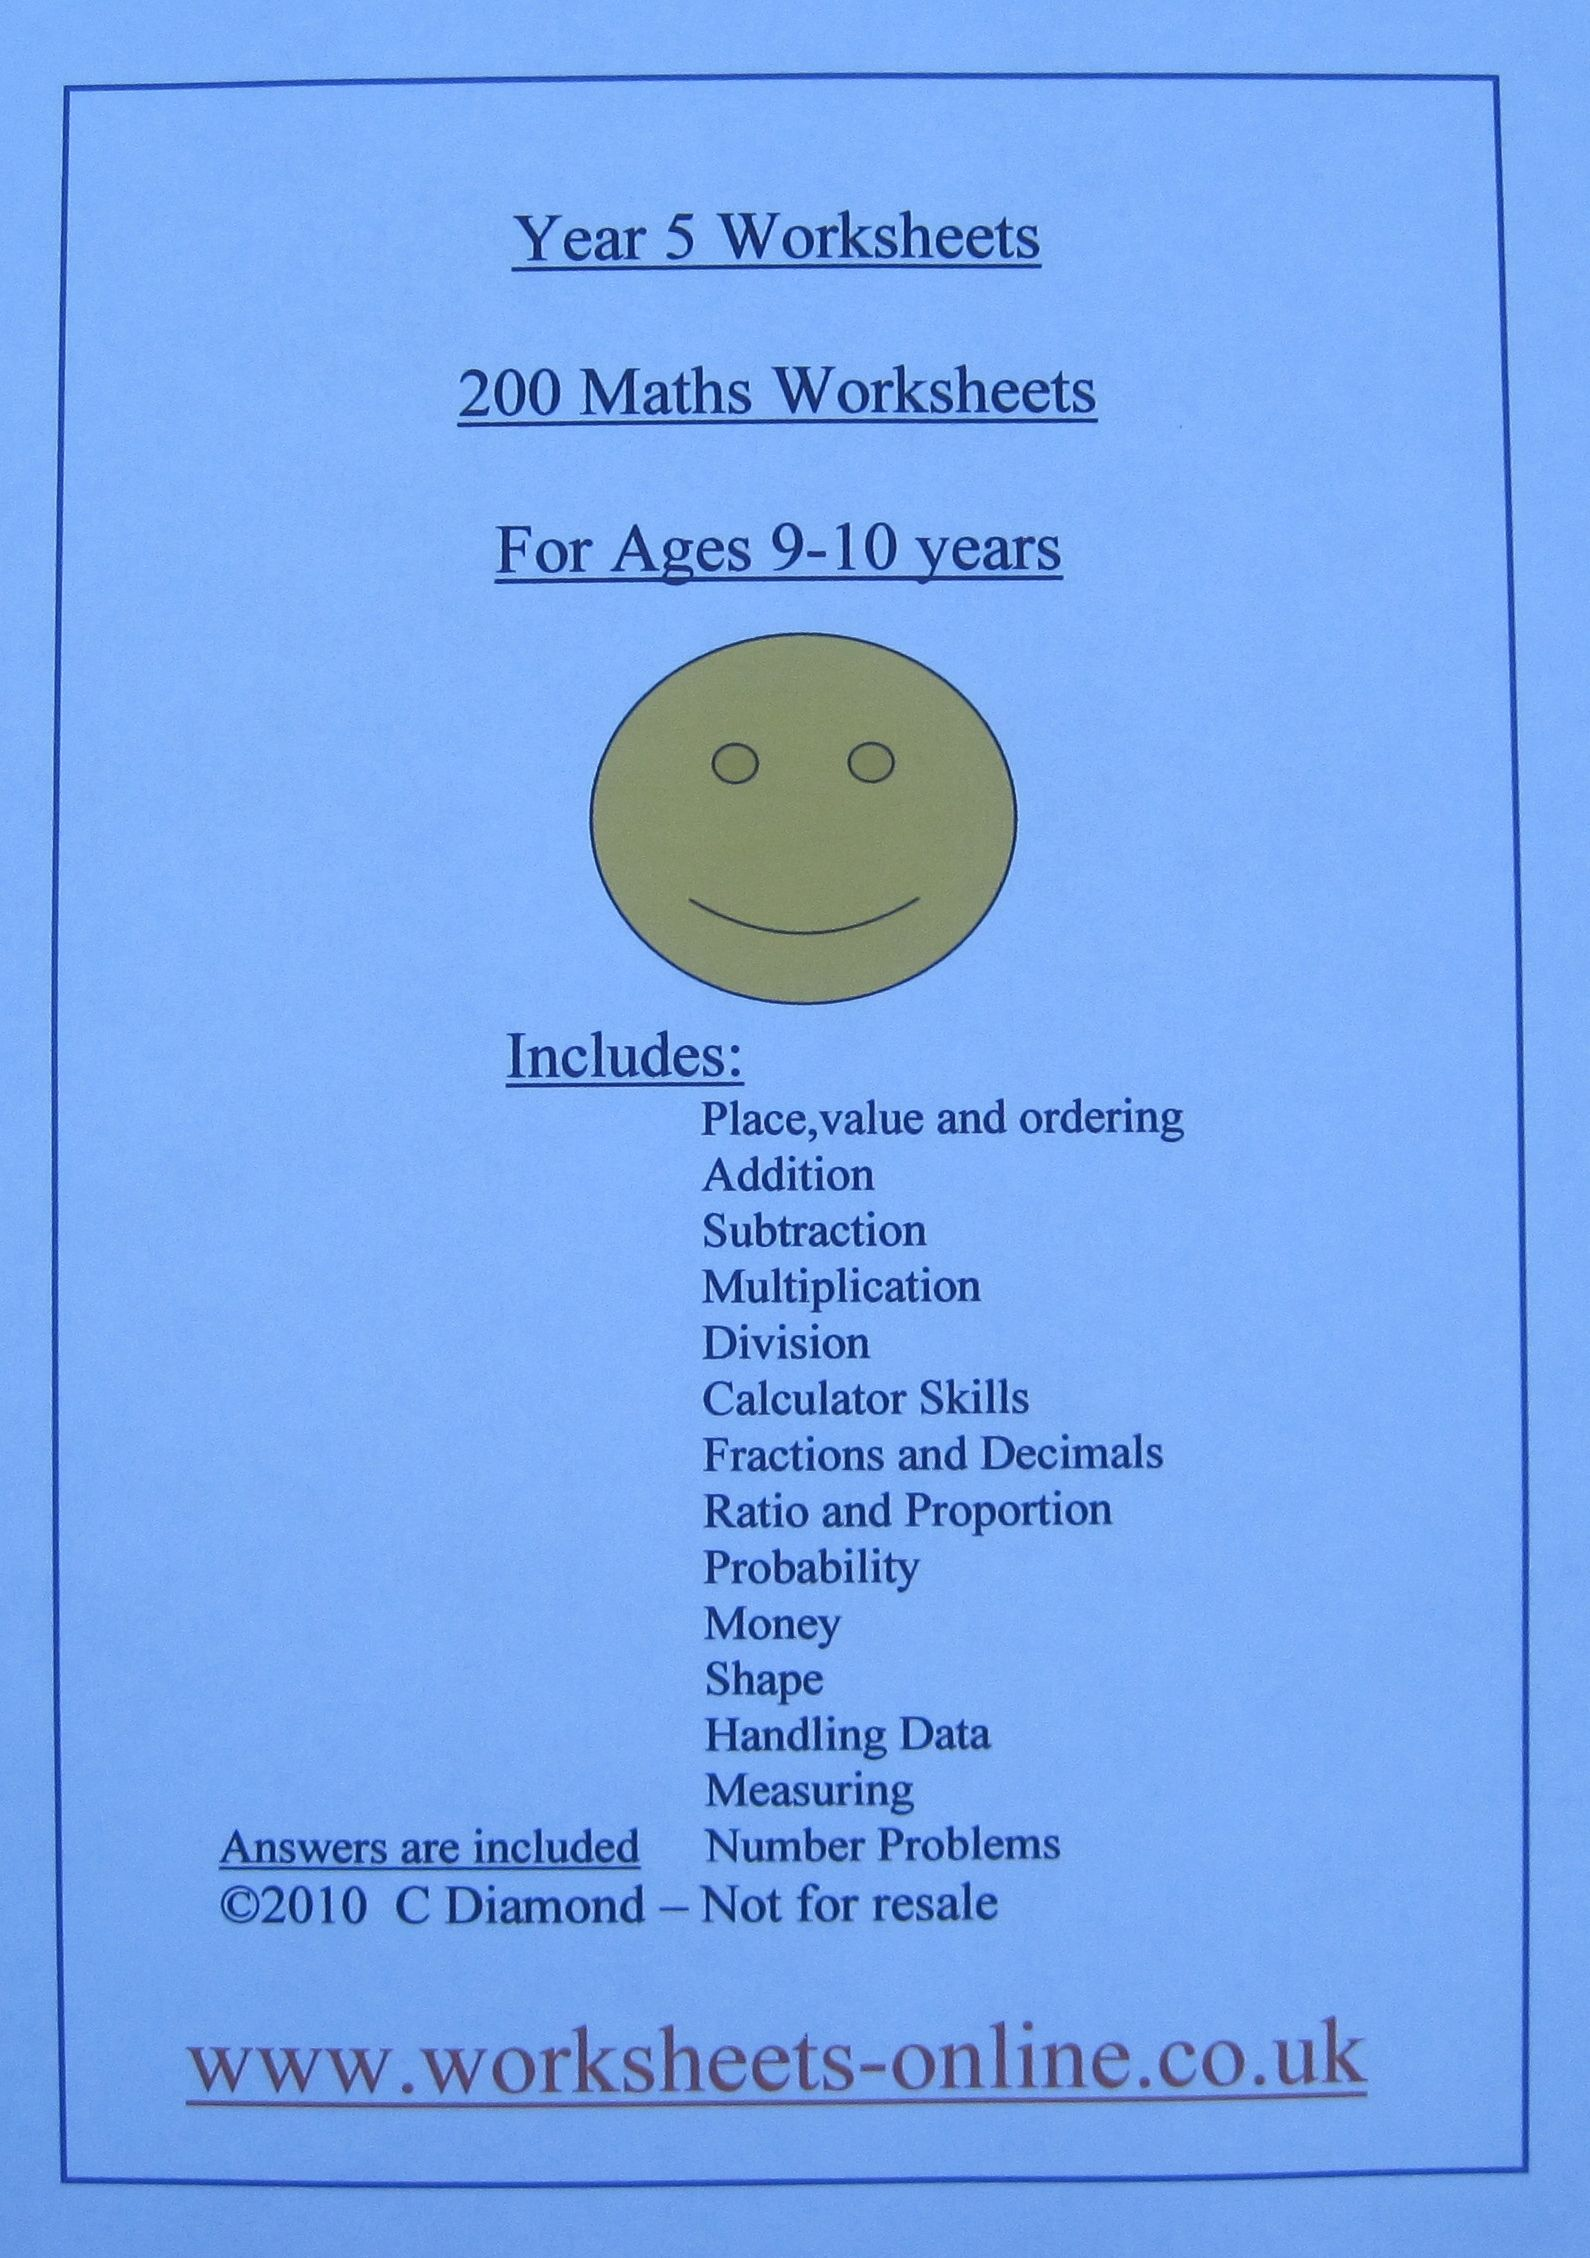 200 Year 5 Maths worksheets for children aged 9 or 10 years old ...